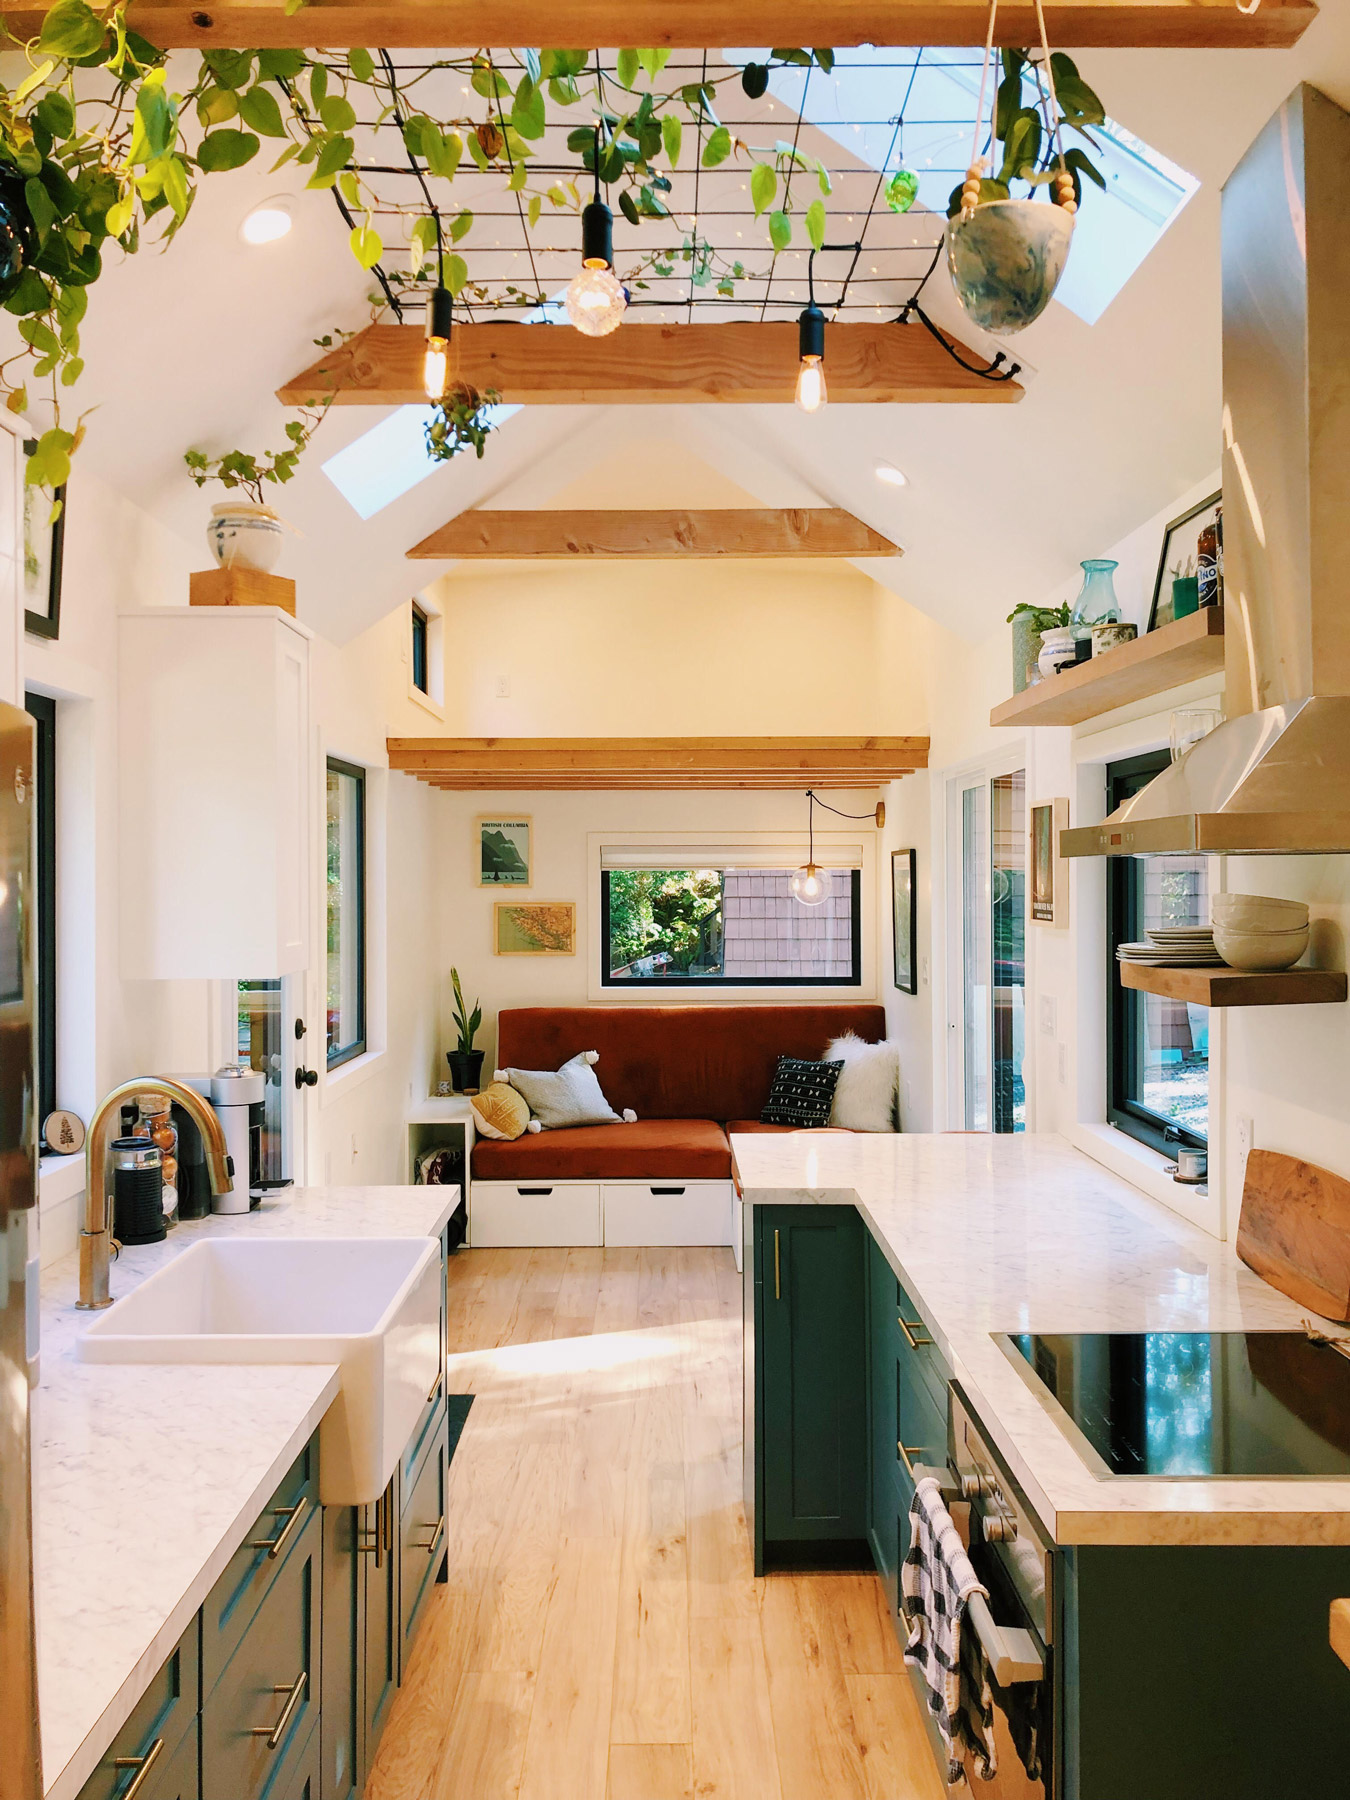 Tiny house and home lifestyle - Lawrence home